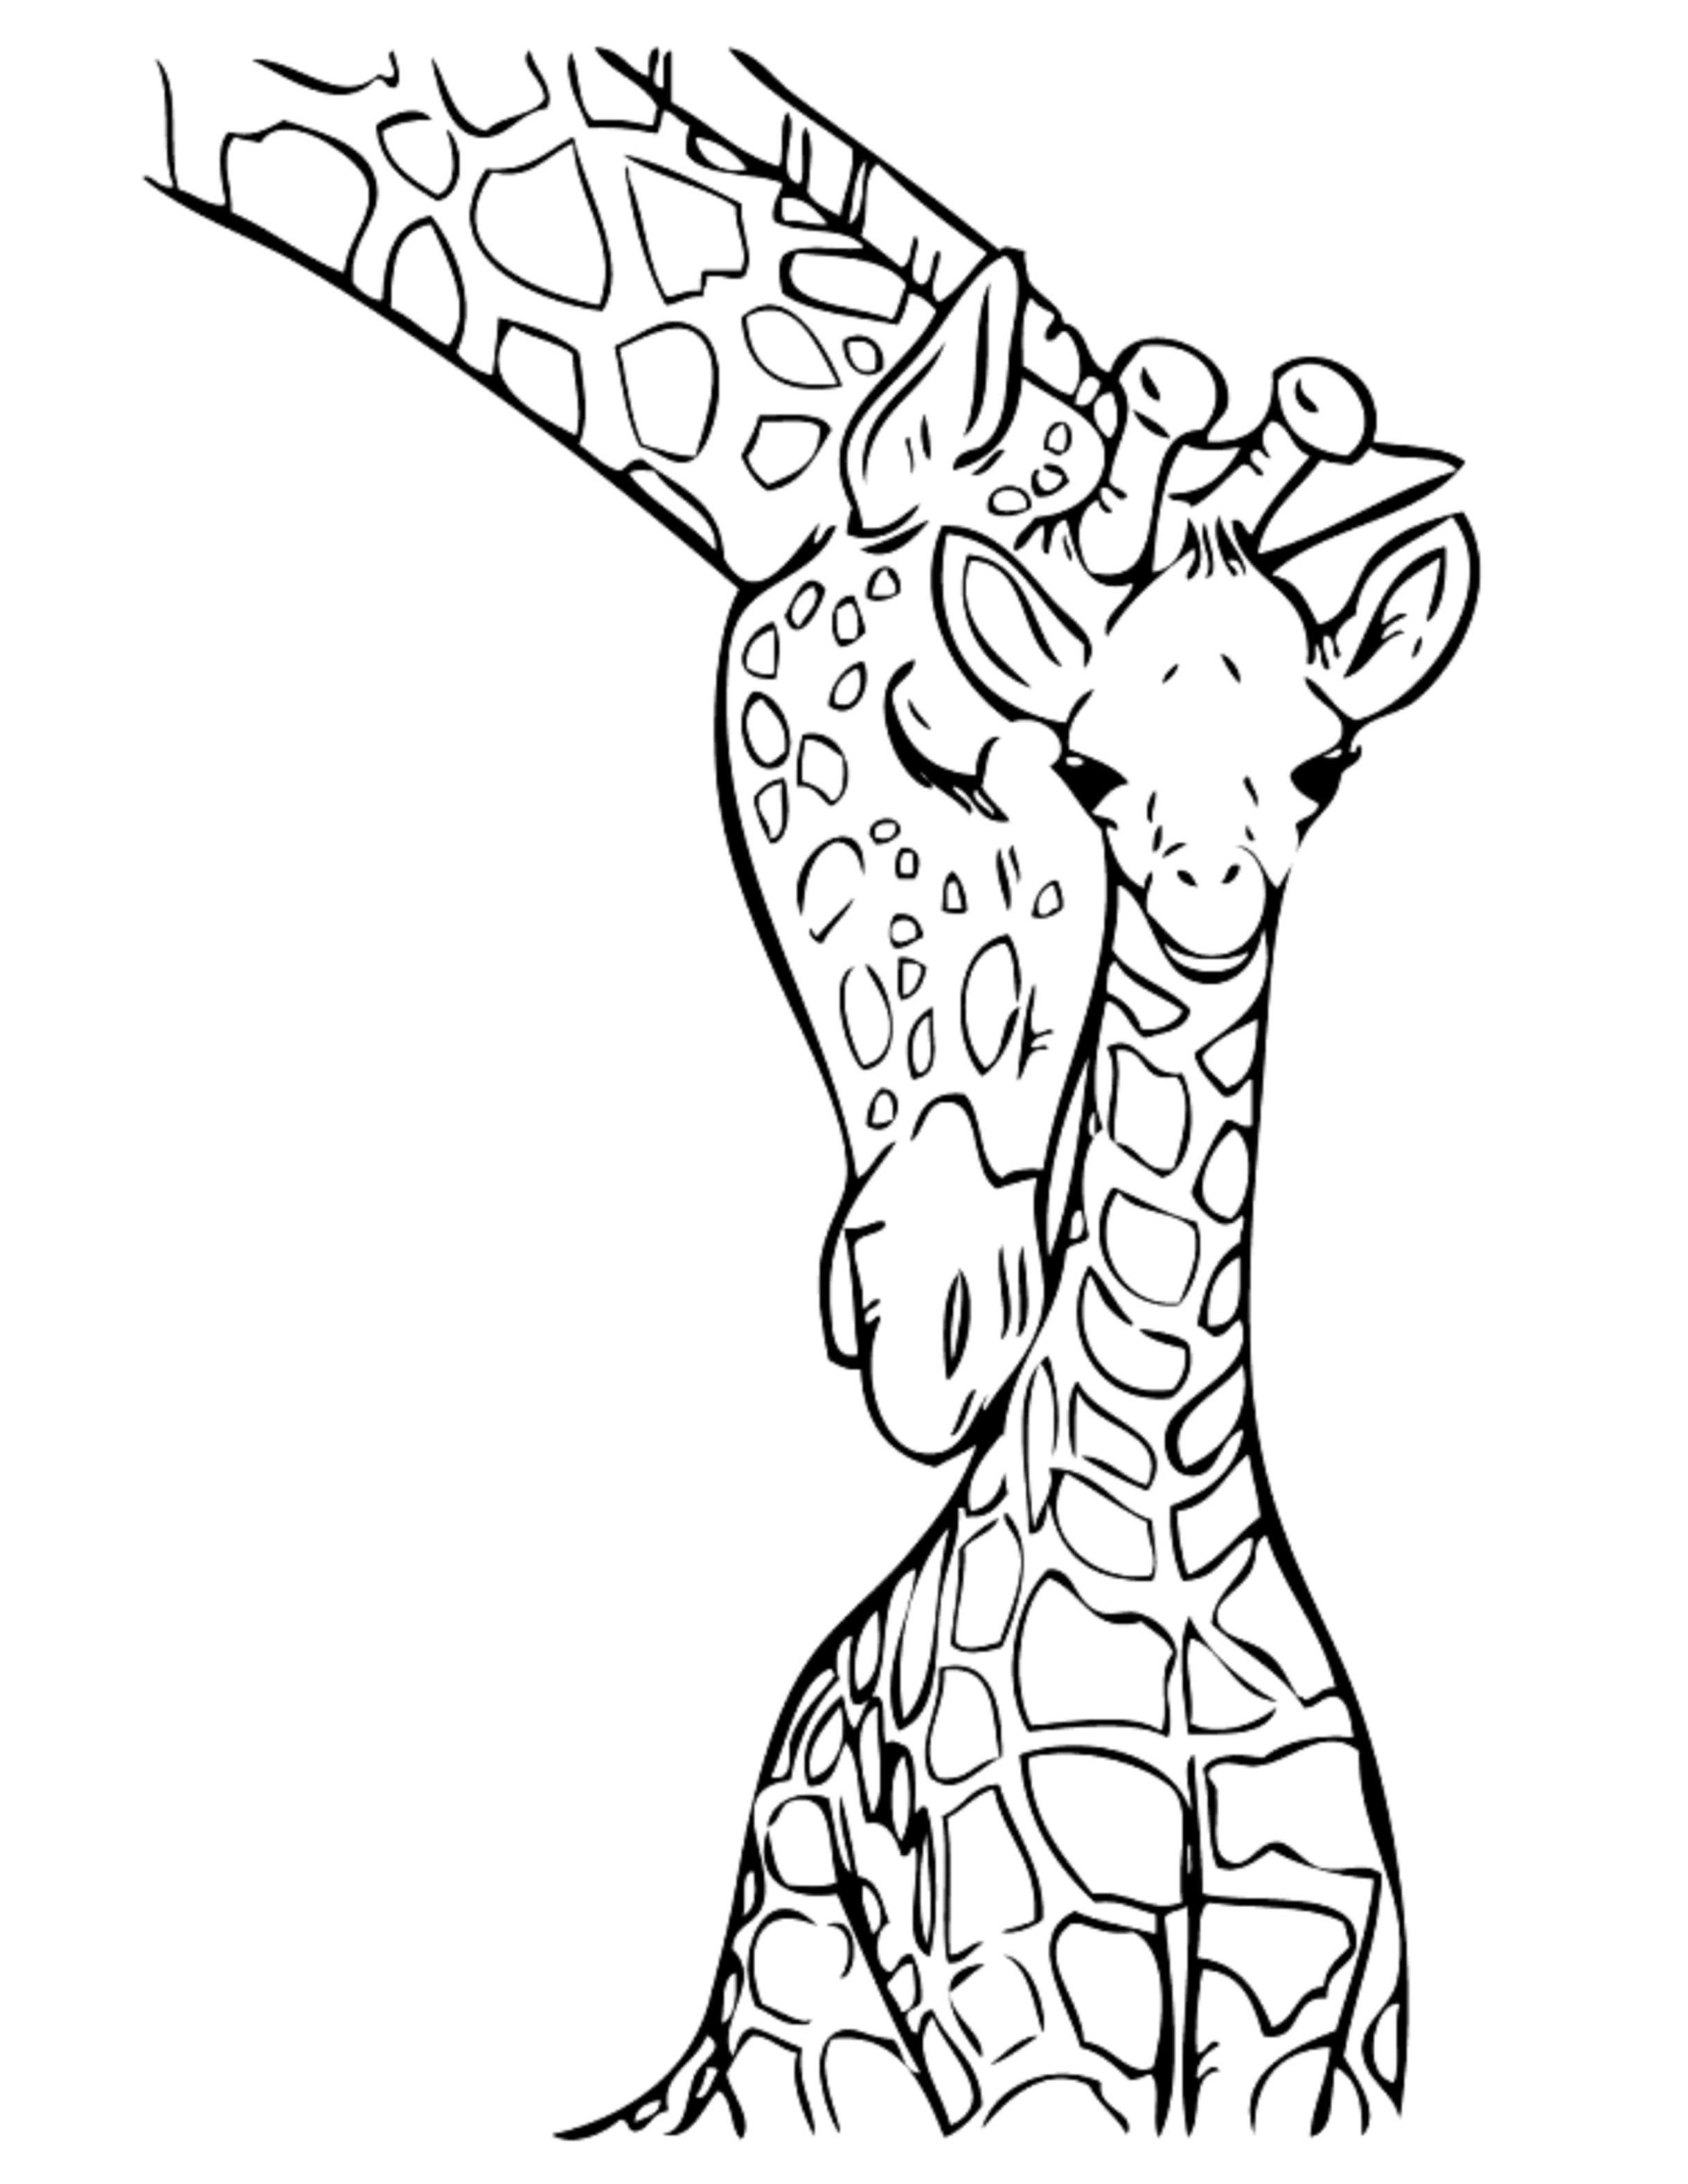 Giraffe Coloring Pages For Kids  Print & Download Giraffe Coloring Pages for Kids to Have Fun